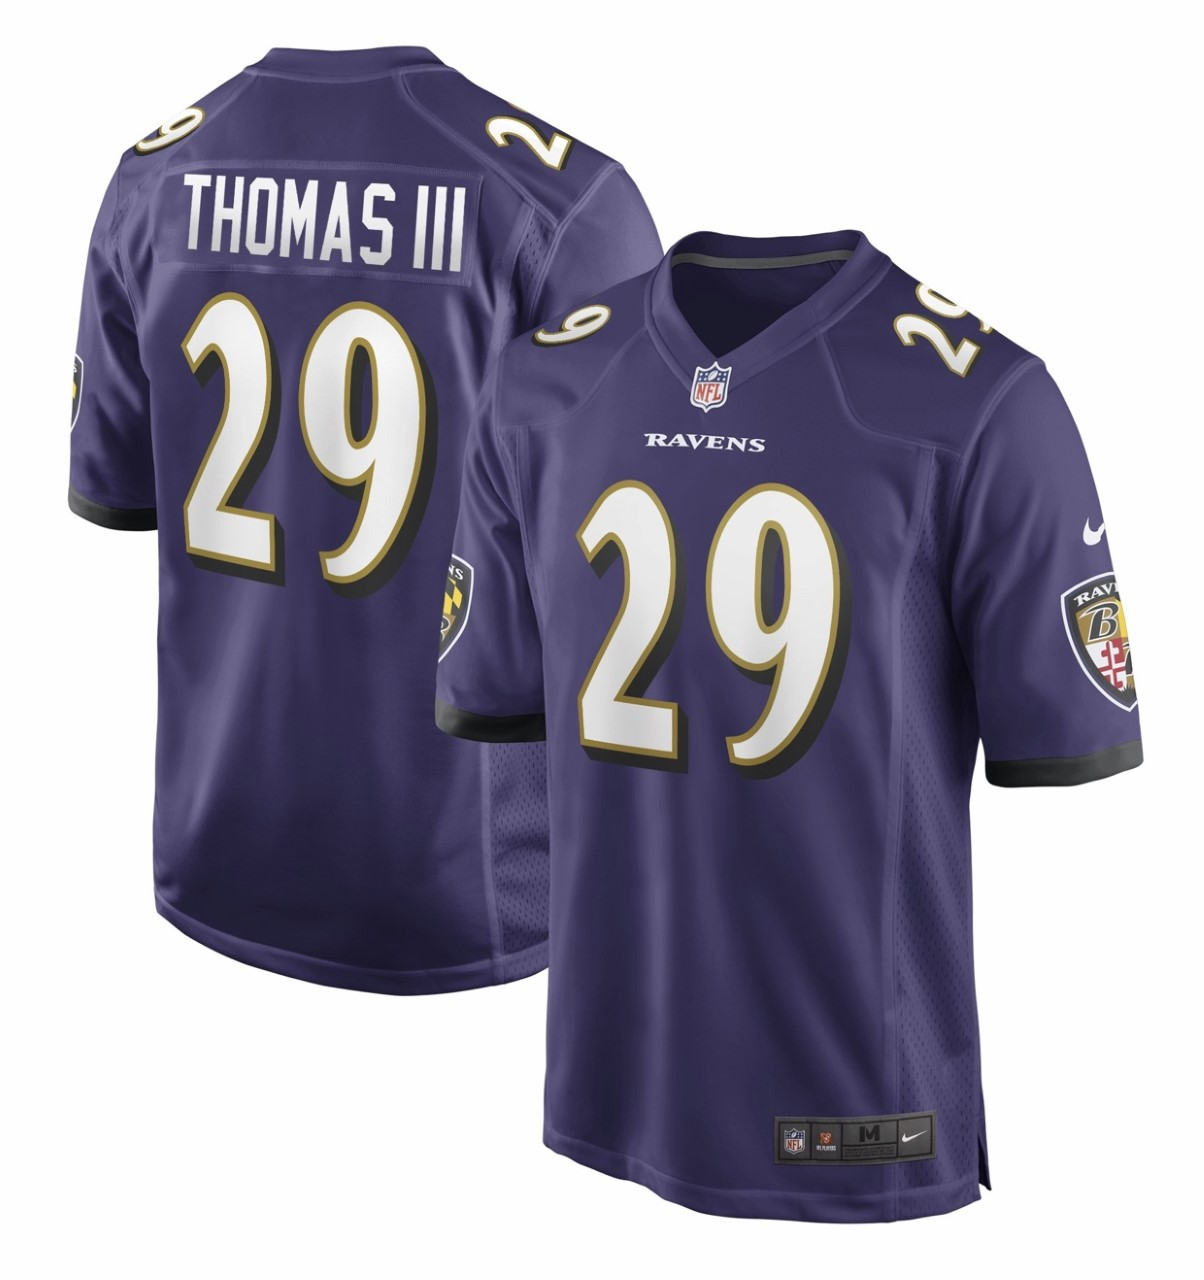 Nike Ravens 29 Earl Thomas III Purple Vapor Untouchable Limited Jersey